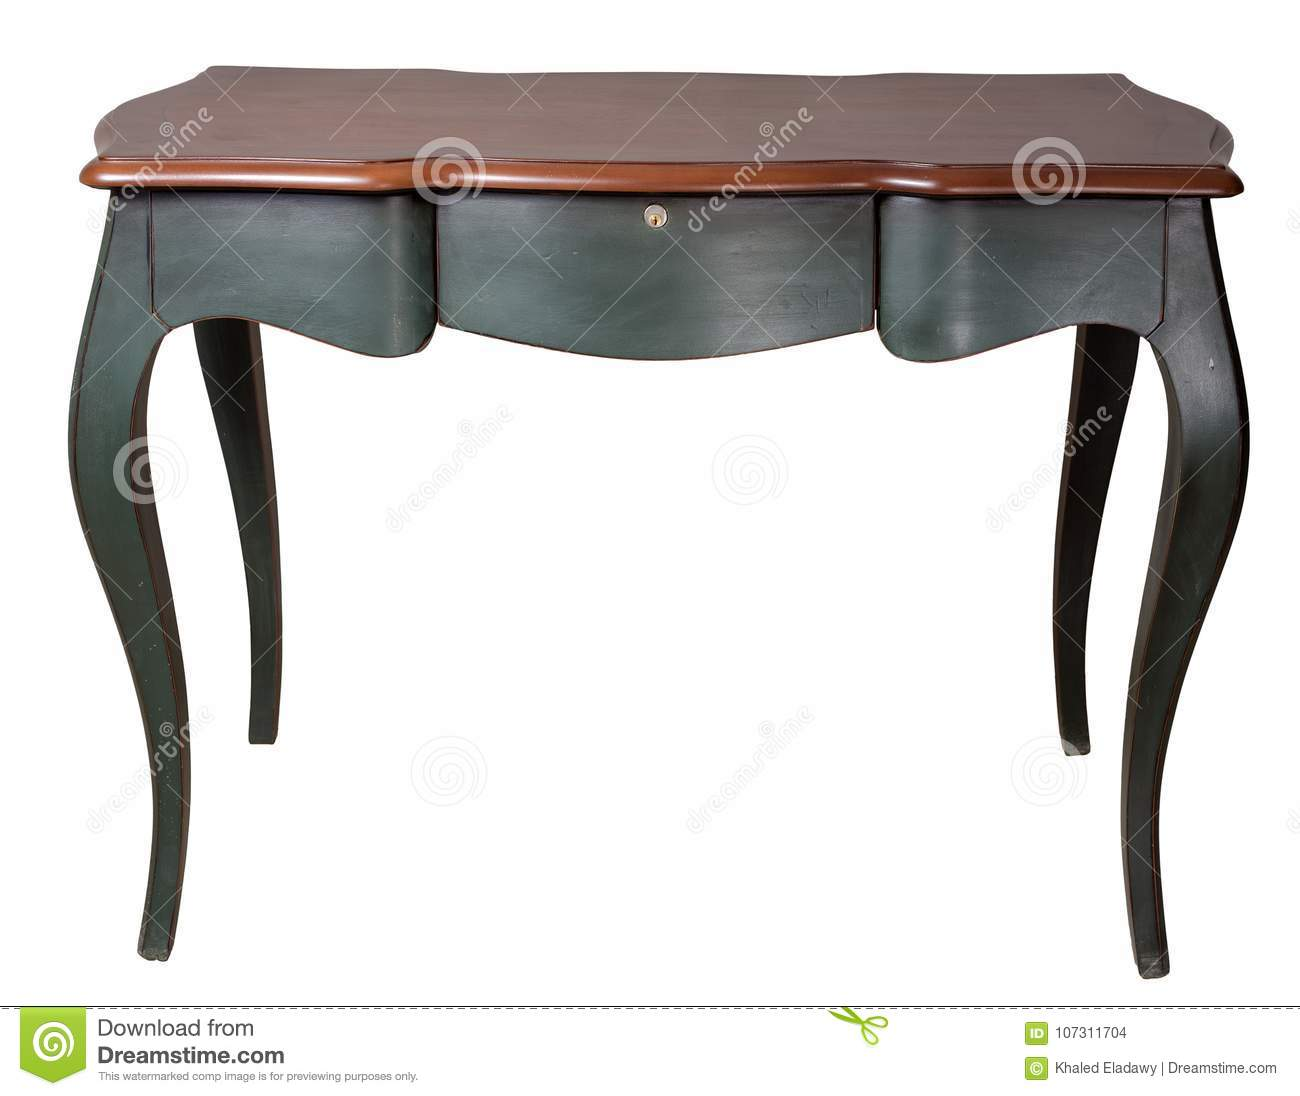 Retro wooden desk table with dark green legs and three drawers isolated on white background including clipping path